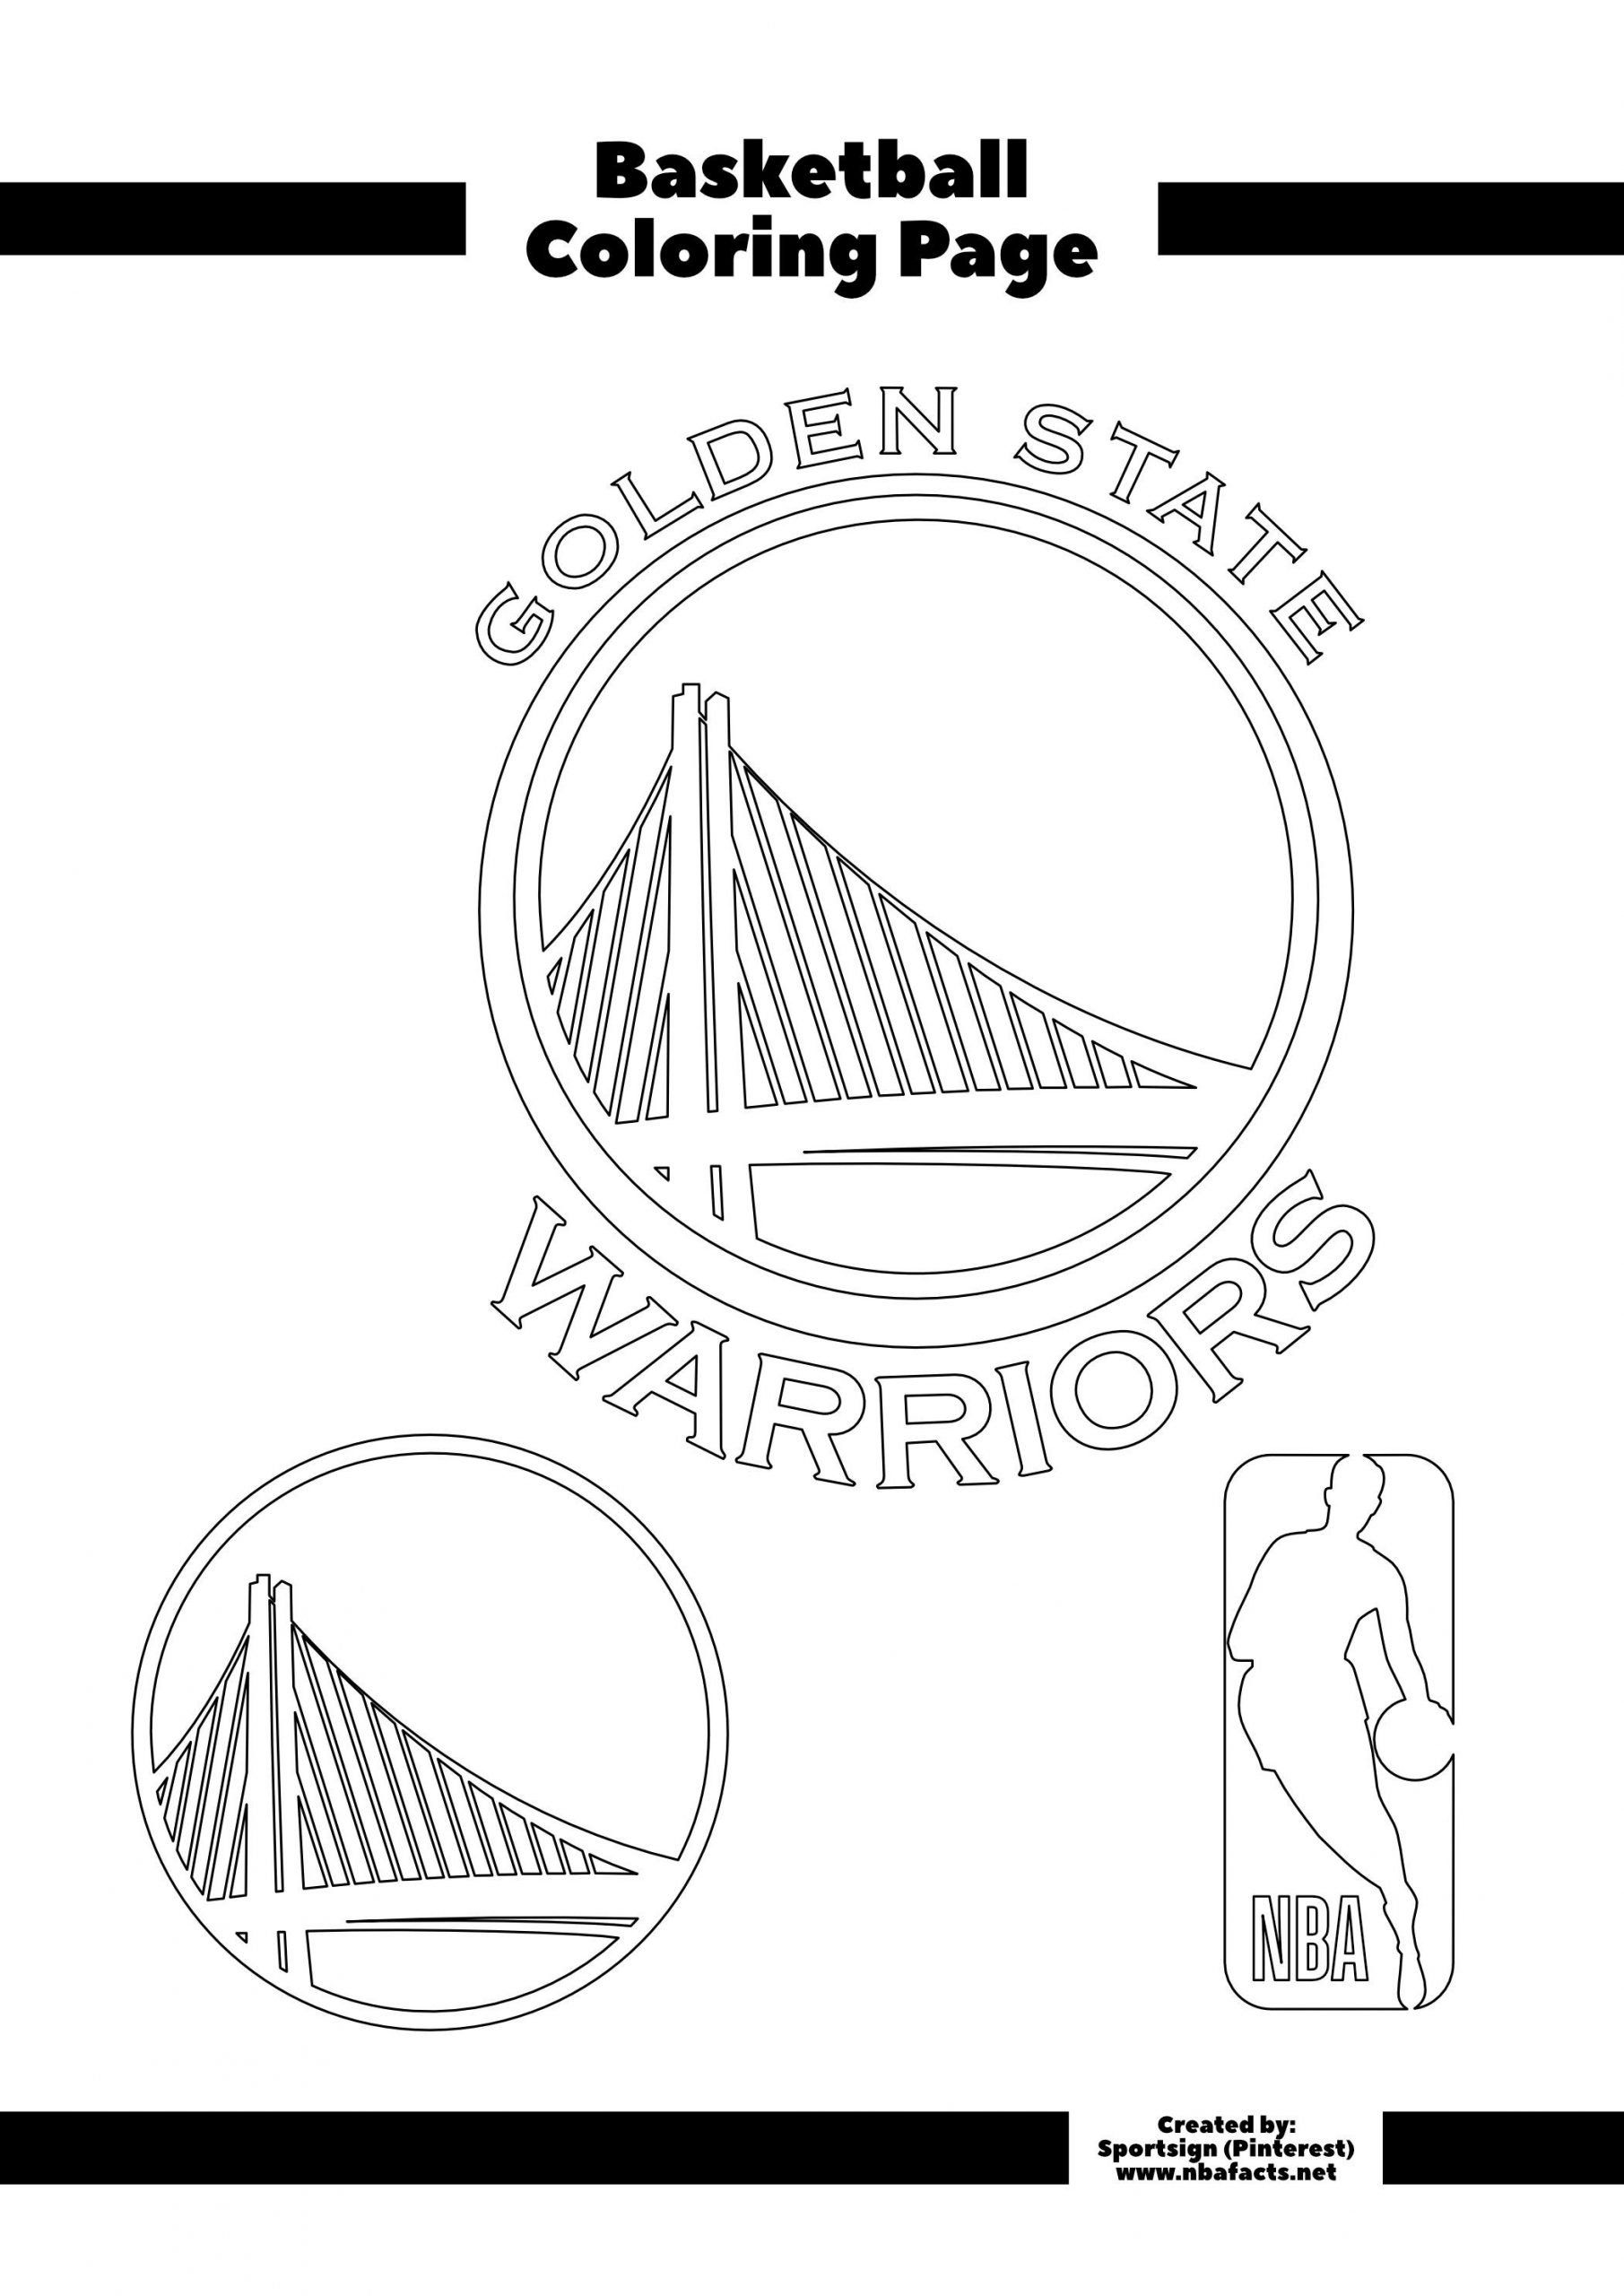 Golden State Warriors Coloring Pages Pin On Golden State Warriors Nba Basketball In 2020 Coloring Pages Puppy Coloring Pages Turkey Coloring Pages